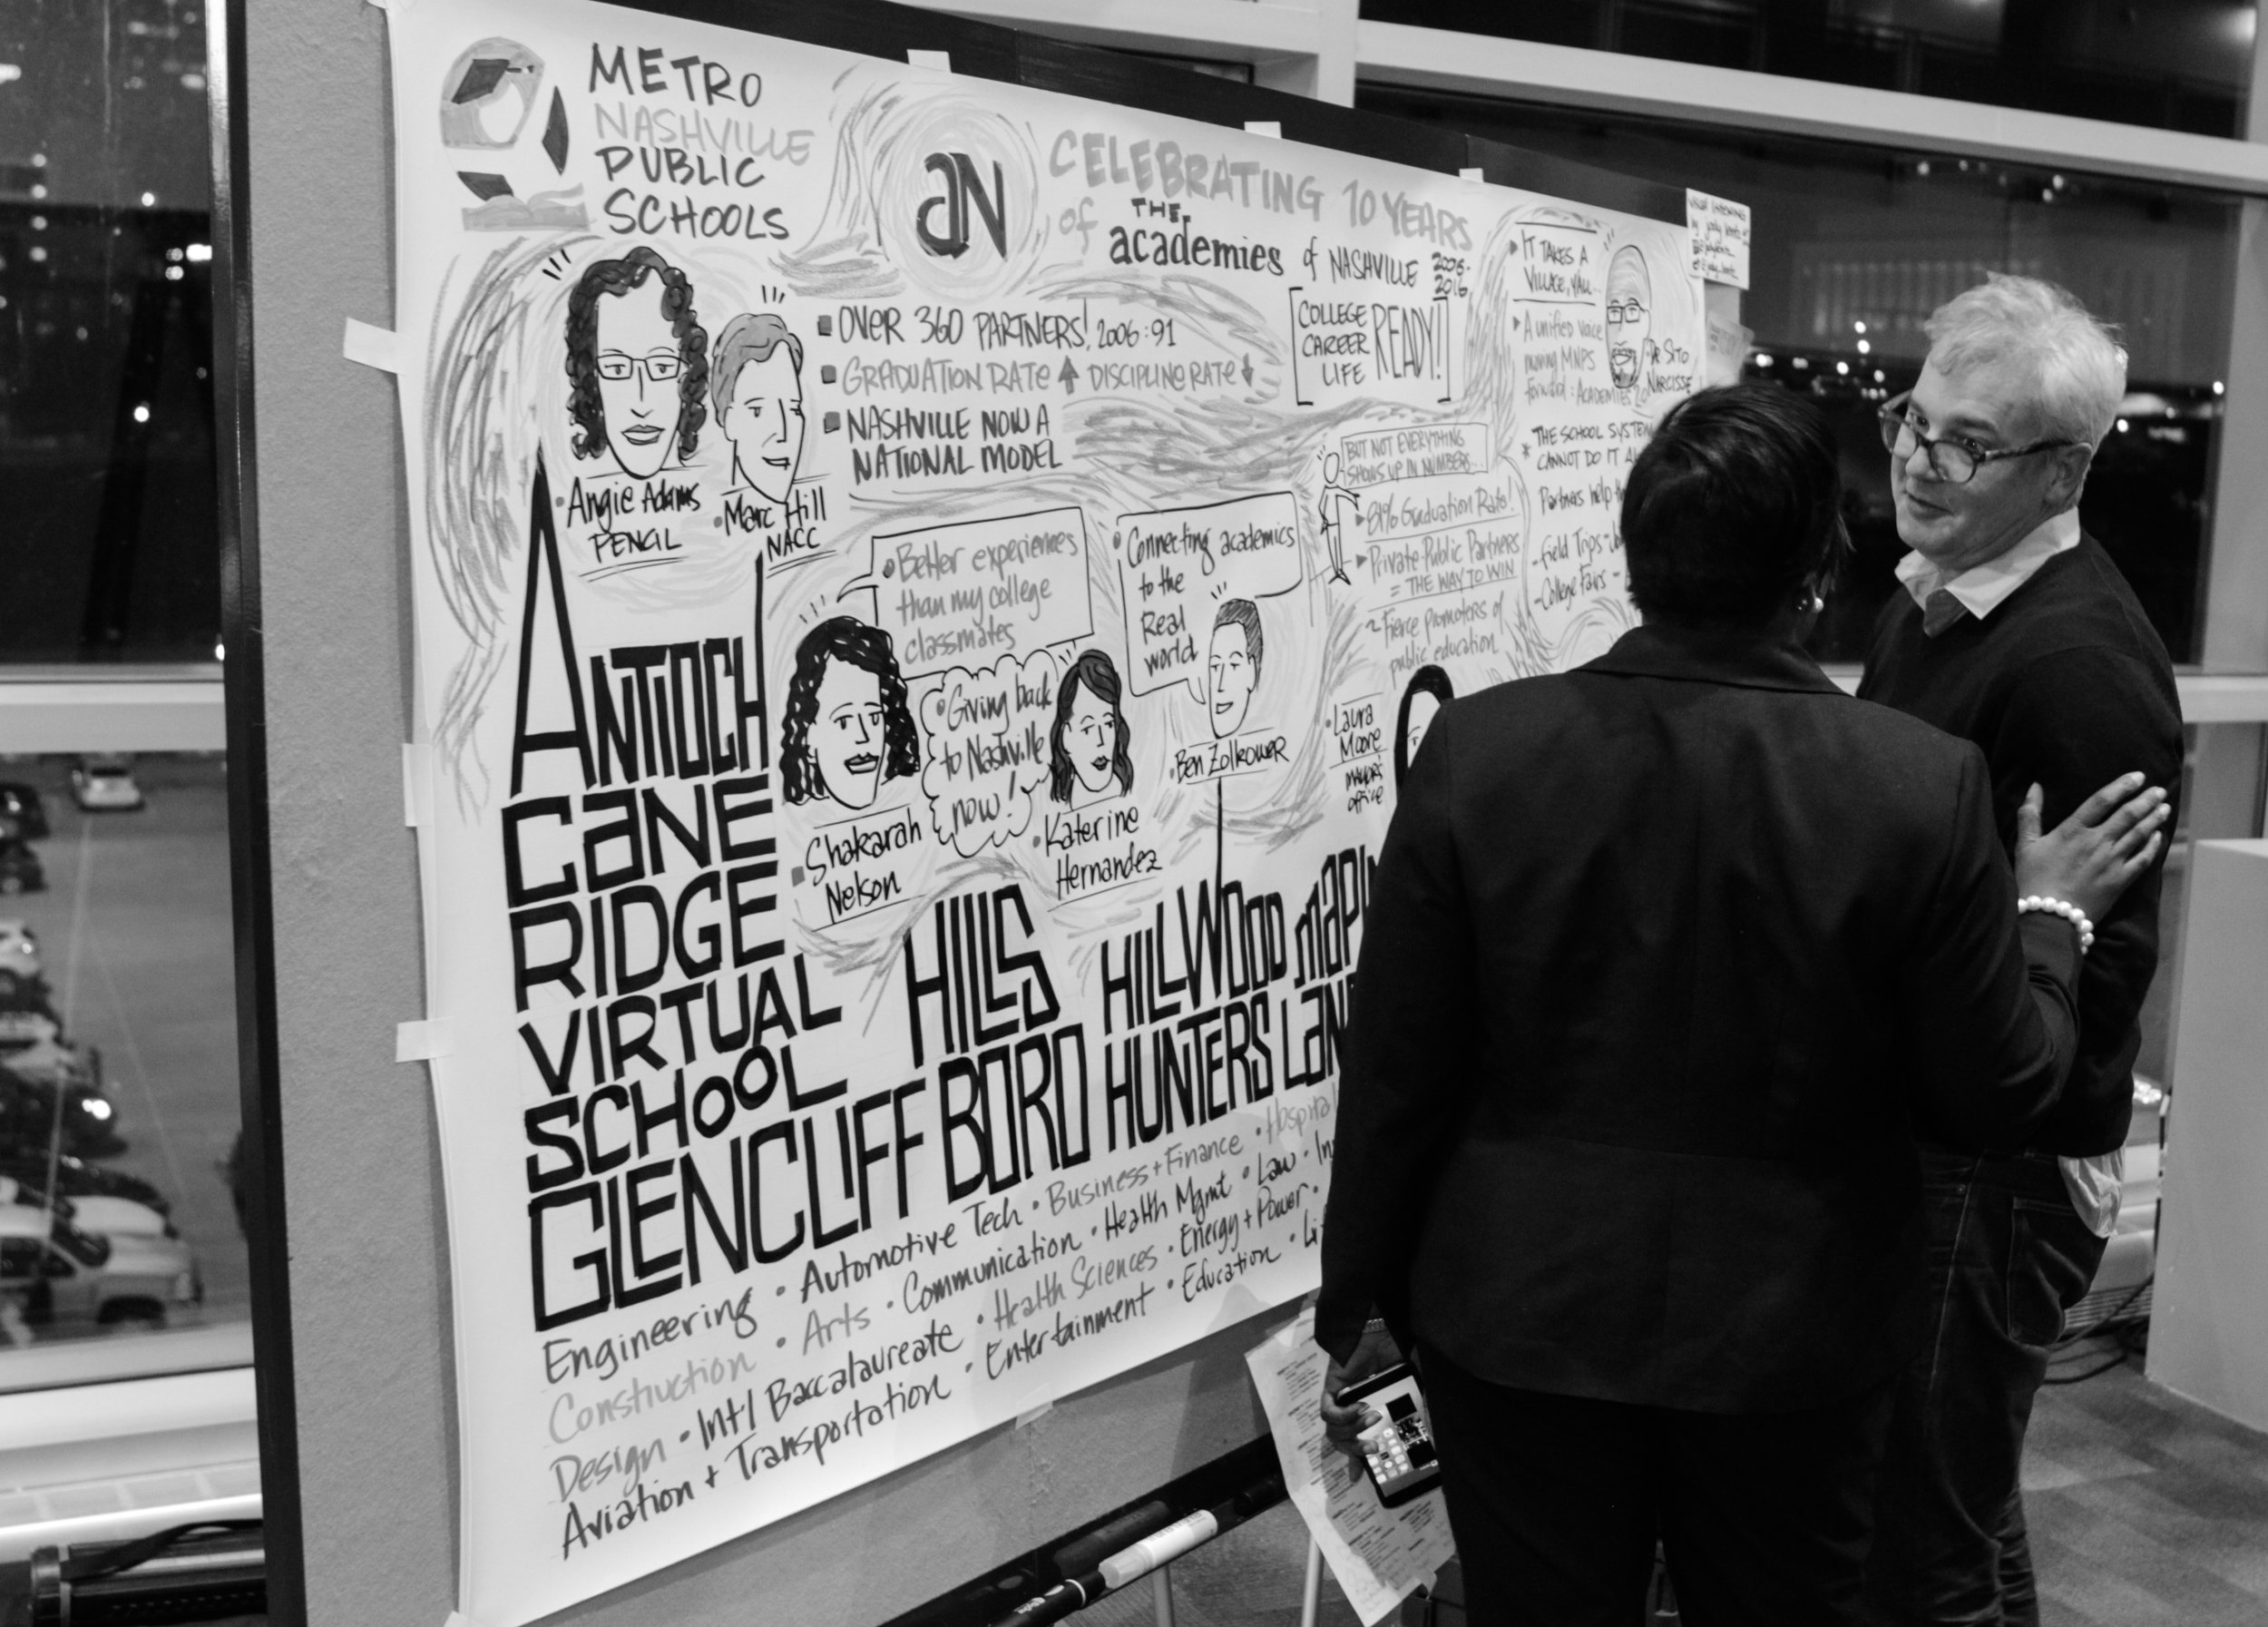 Academies graduates shared their stories of how the Academies of Nashville impacted their education. Throughout the evening, Jody Lenz recorded their inspiring messages through graphic listening.